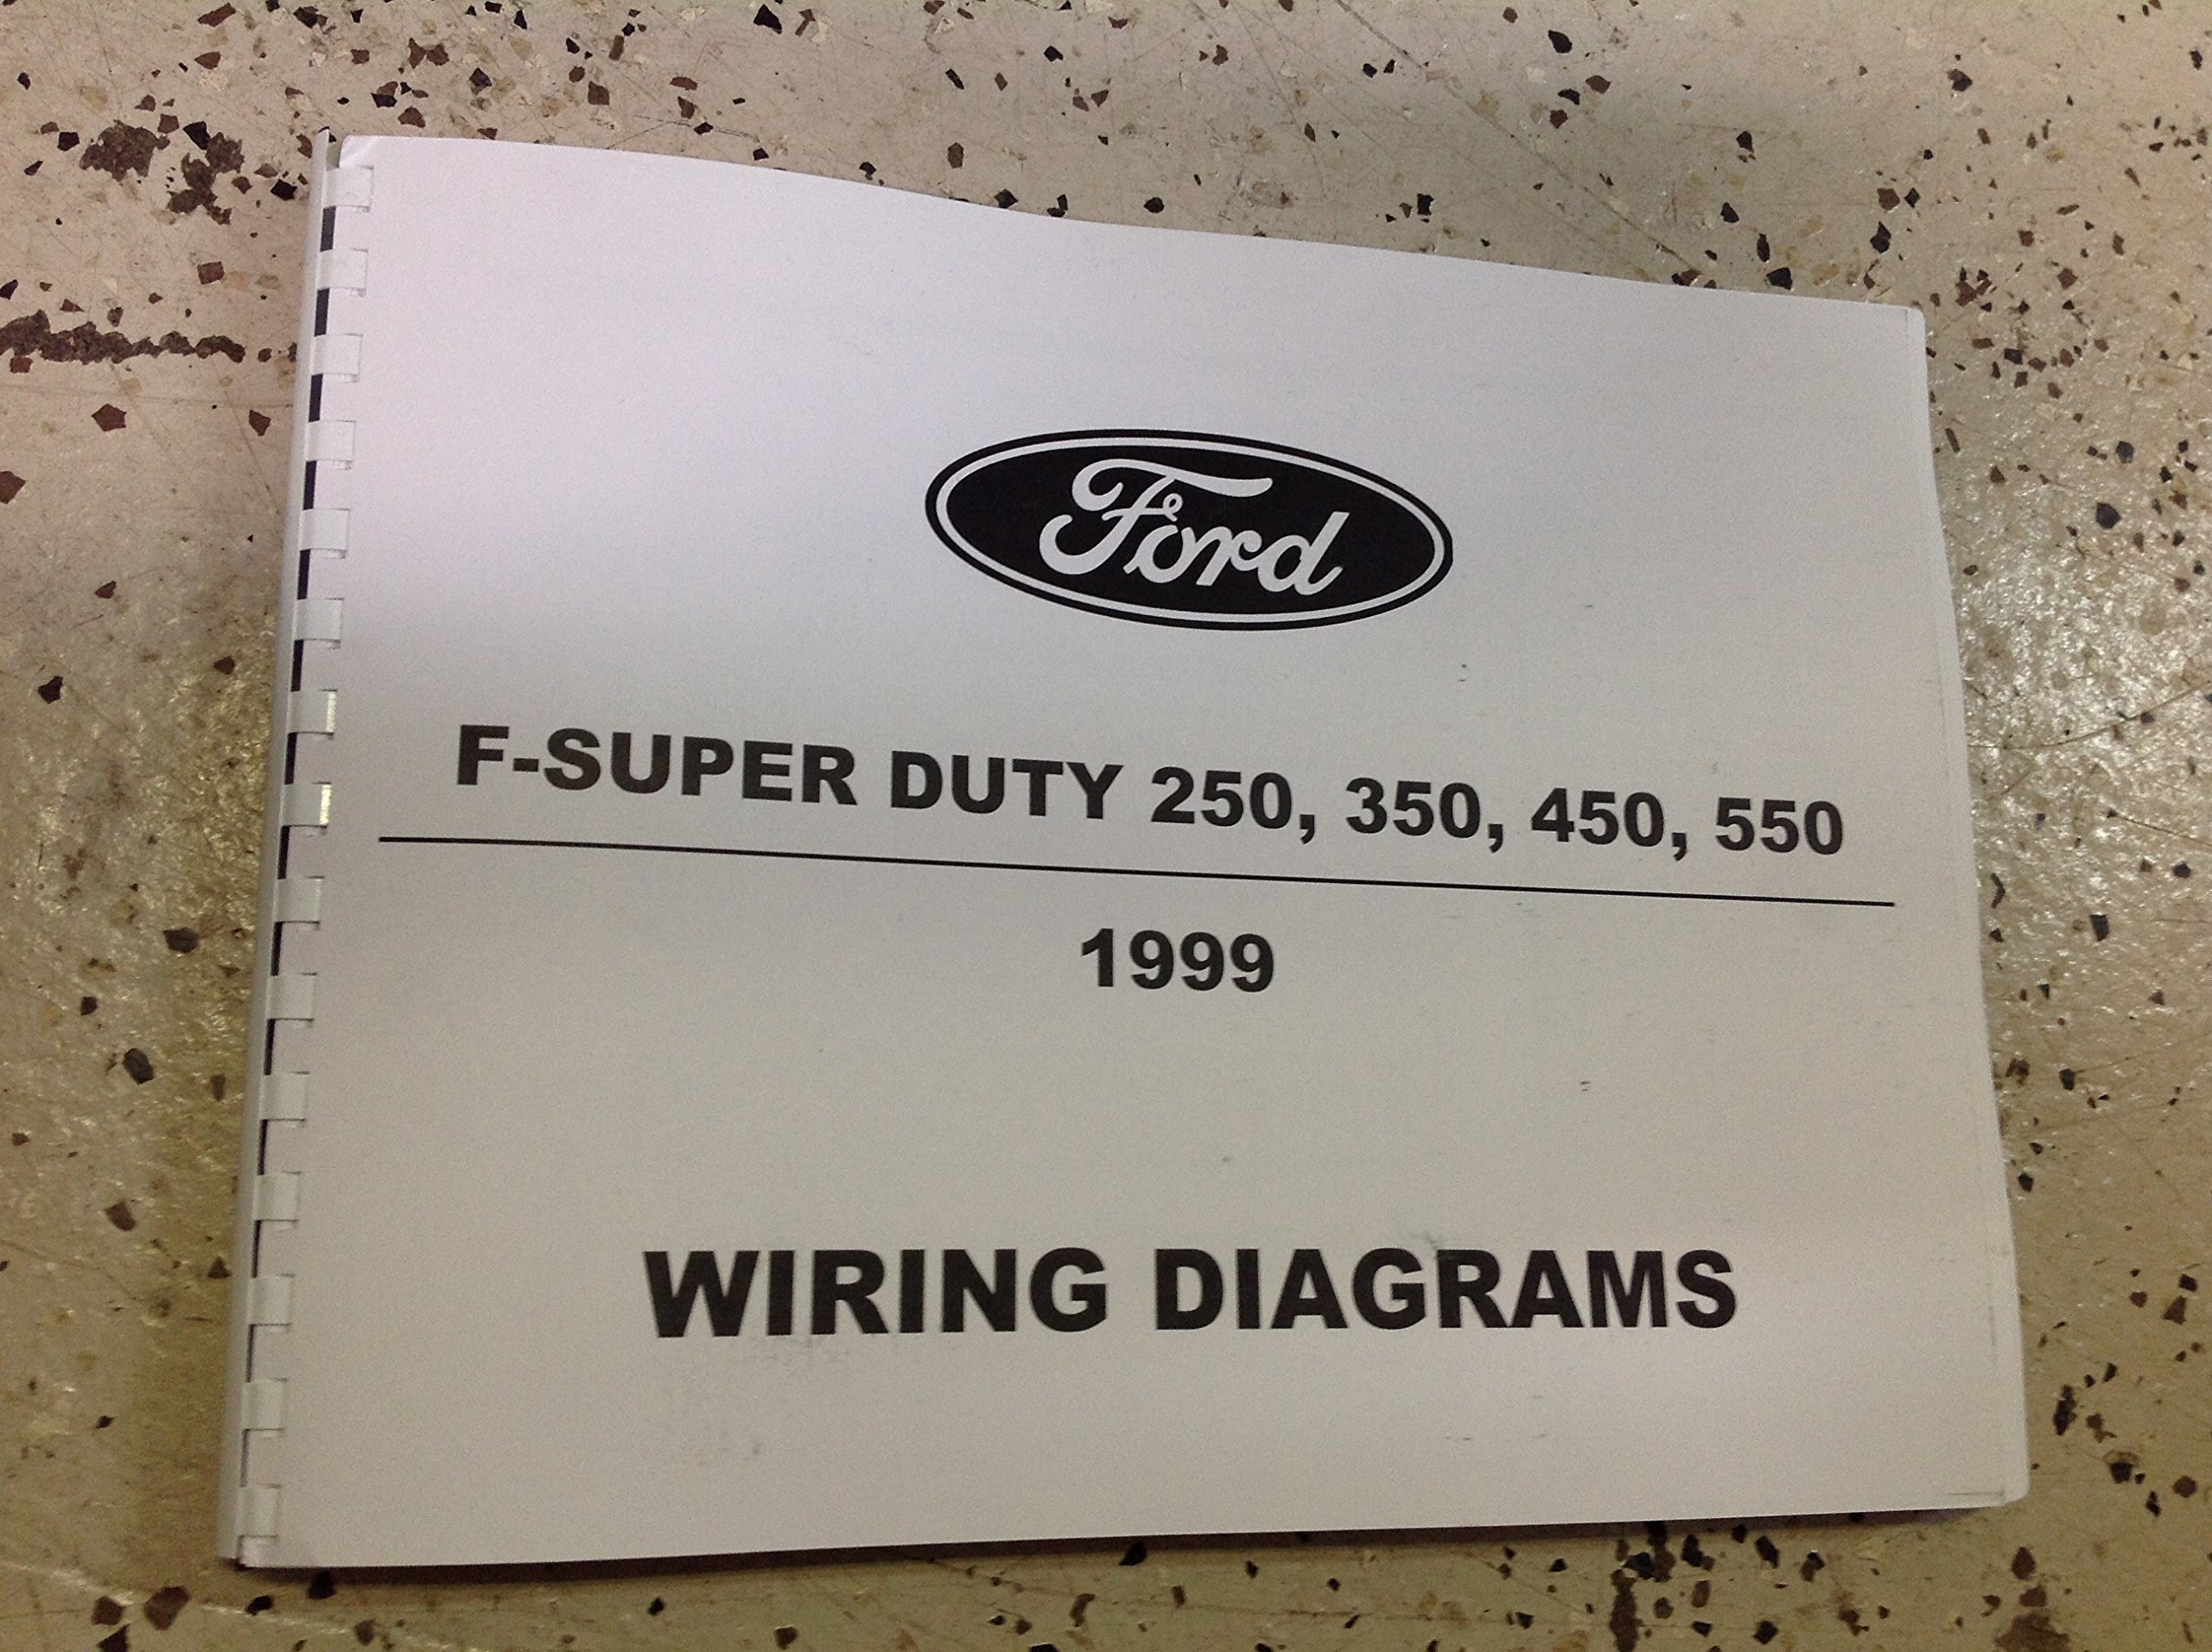 1999 Ford F SERIES F250 F-250 F350 Duty Truck Electrical Wiring Diagram  Manual: FORD: Amazon.com: Books | Ford F350 Super Duty Wiring Diagram |  | Amazon.com